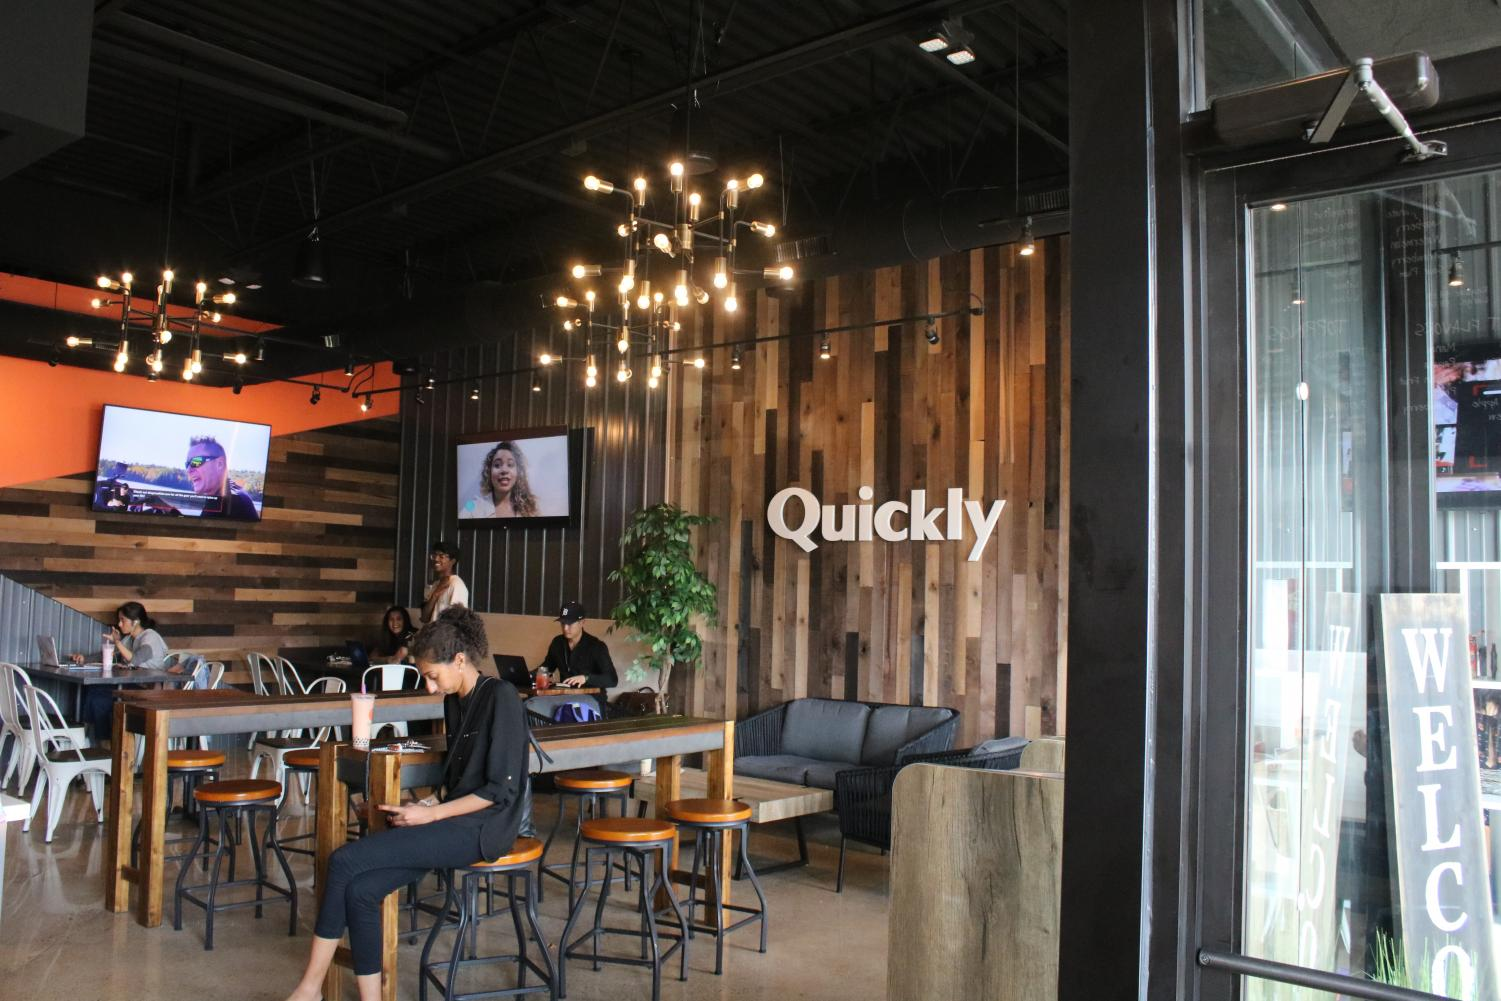 Quickly Bubble Tea officially opens on Rochester Road, bringing boba to troy.